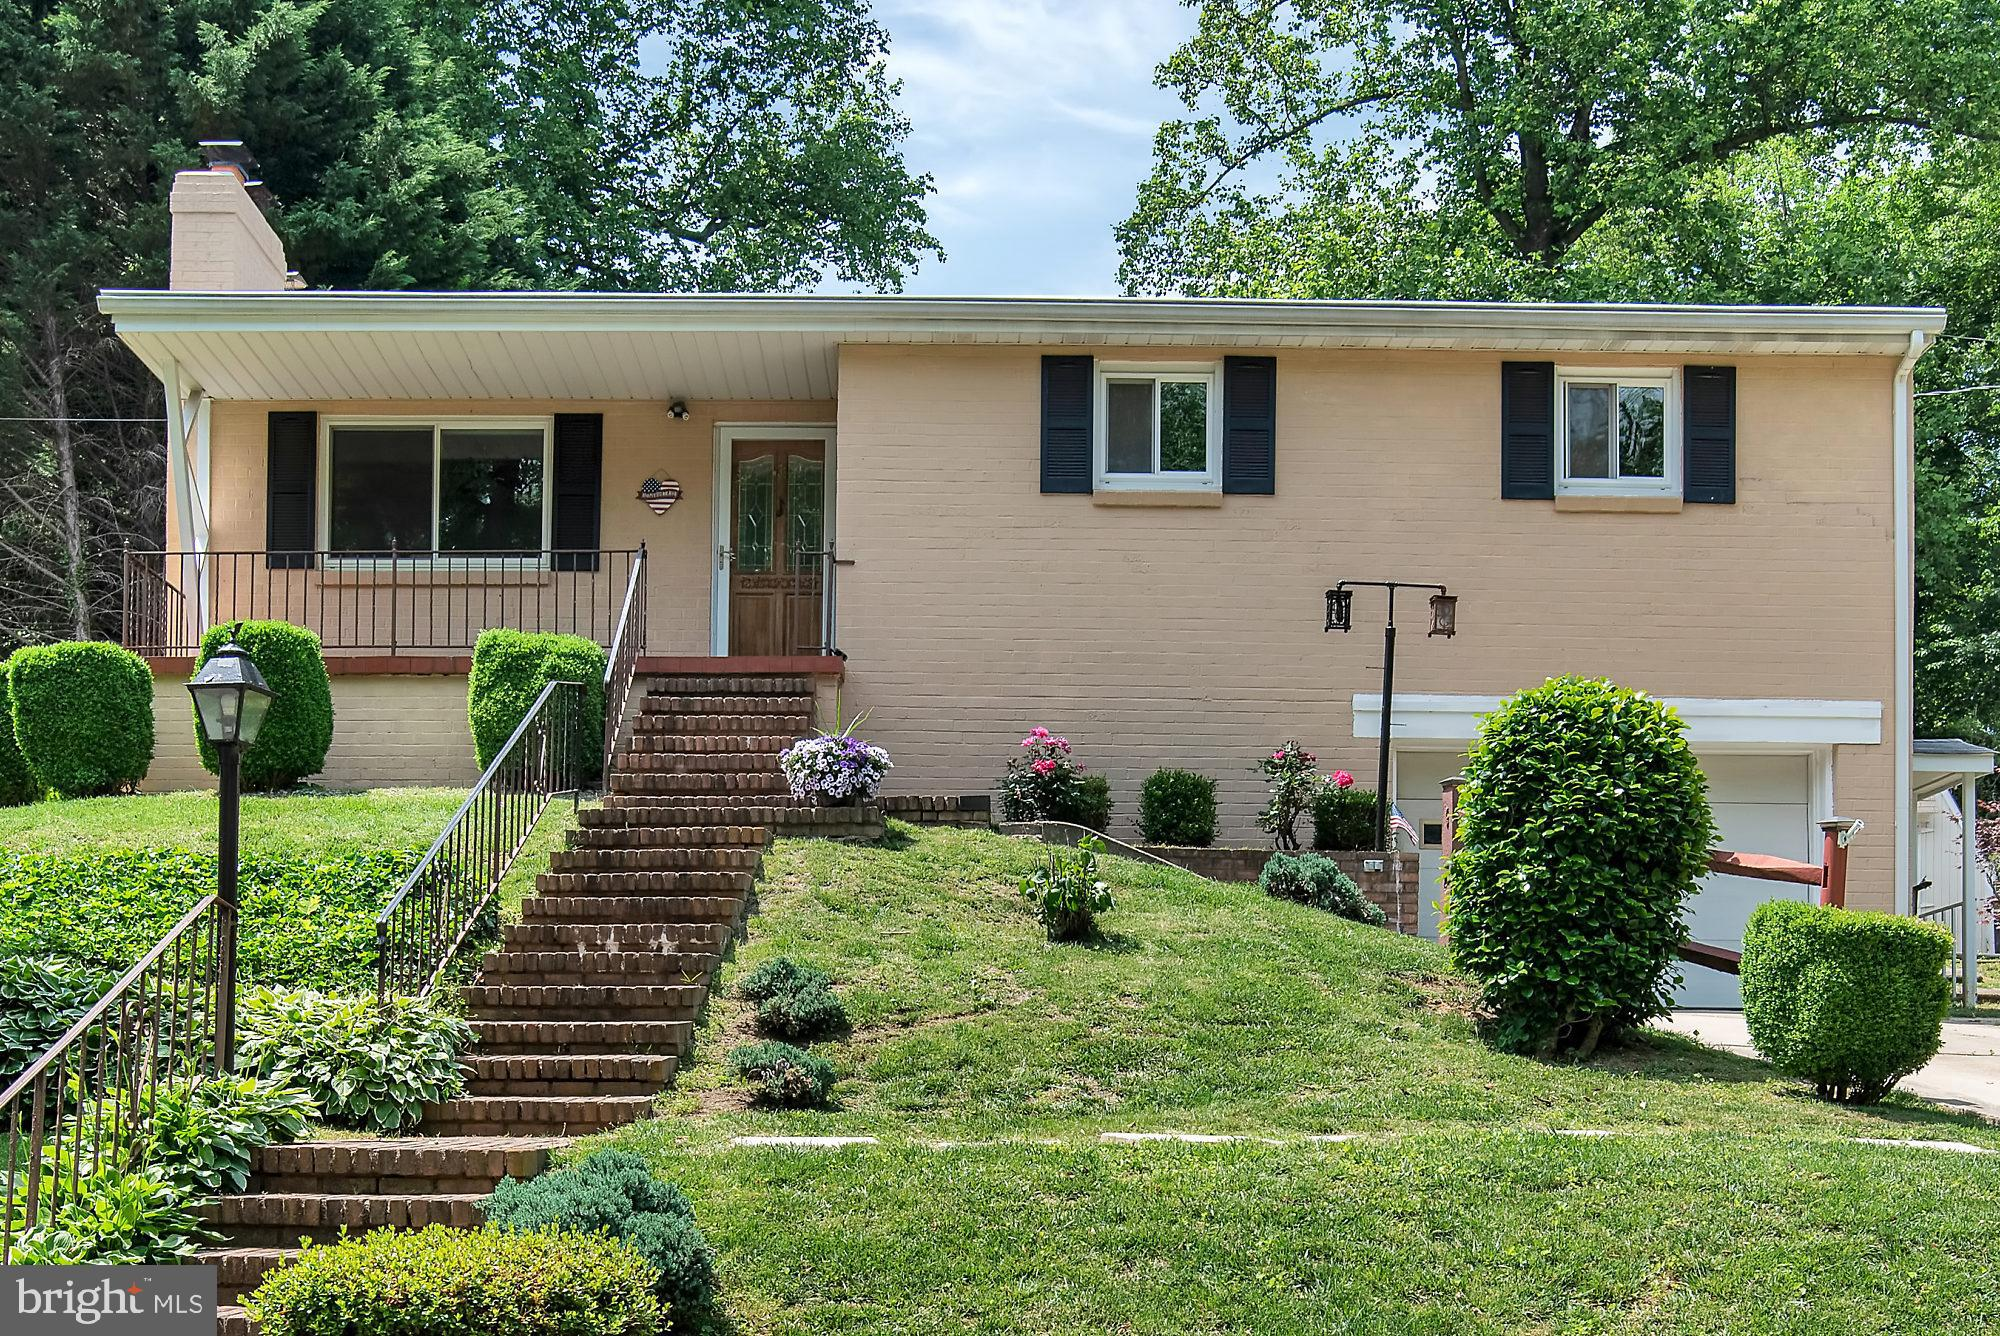 Welcome to this 3BR, 2.5BA home in Broadneck. This slightly elevated home has a great view of the ne